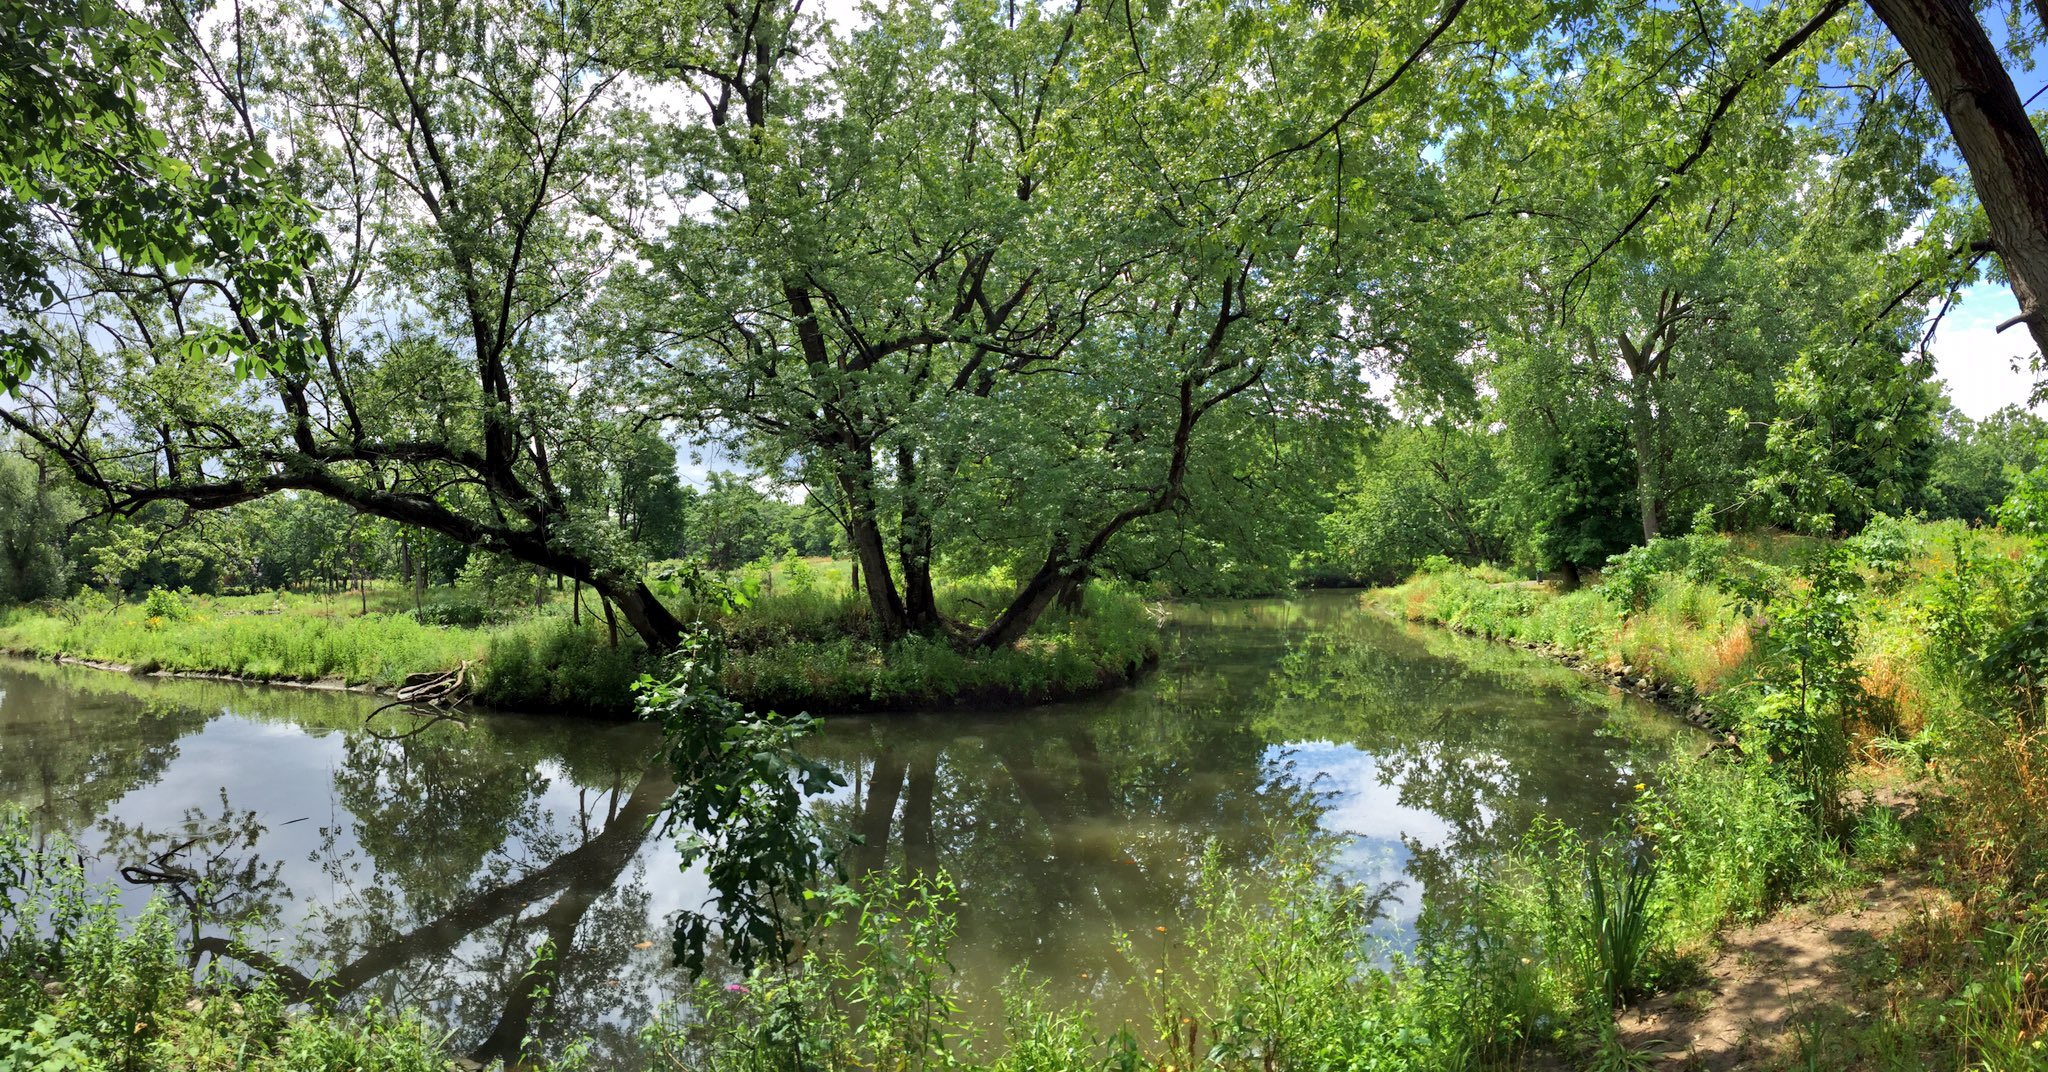 Learning with a view. A well spent Saturday... 🌳💦 #DITLeuclidcreek https://t.co/ej9xoIKZvO